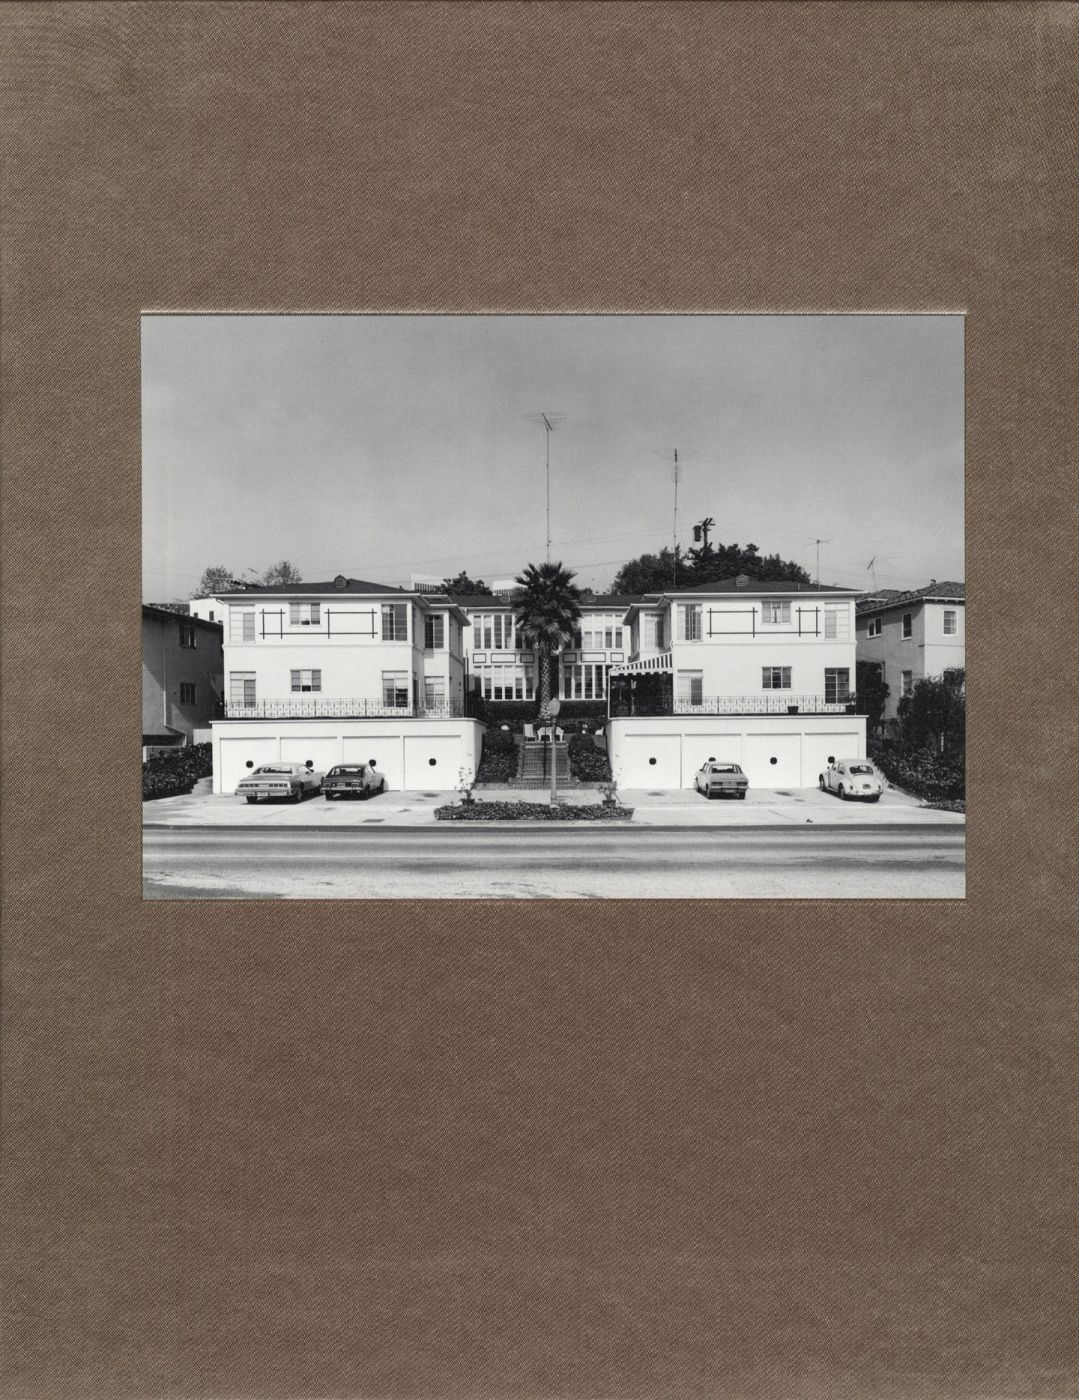 NZ Library #1: Bevan Davies: Los Angeles 1976, Limited Edition (NZ Library - Set One, Volume One) [SIGNED]